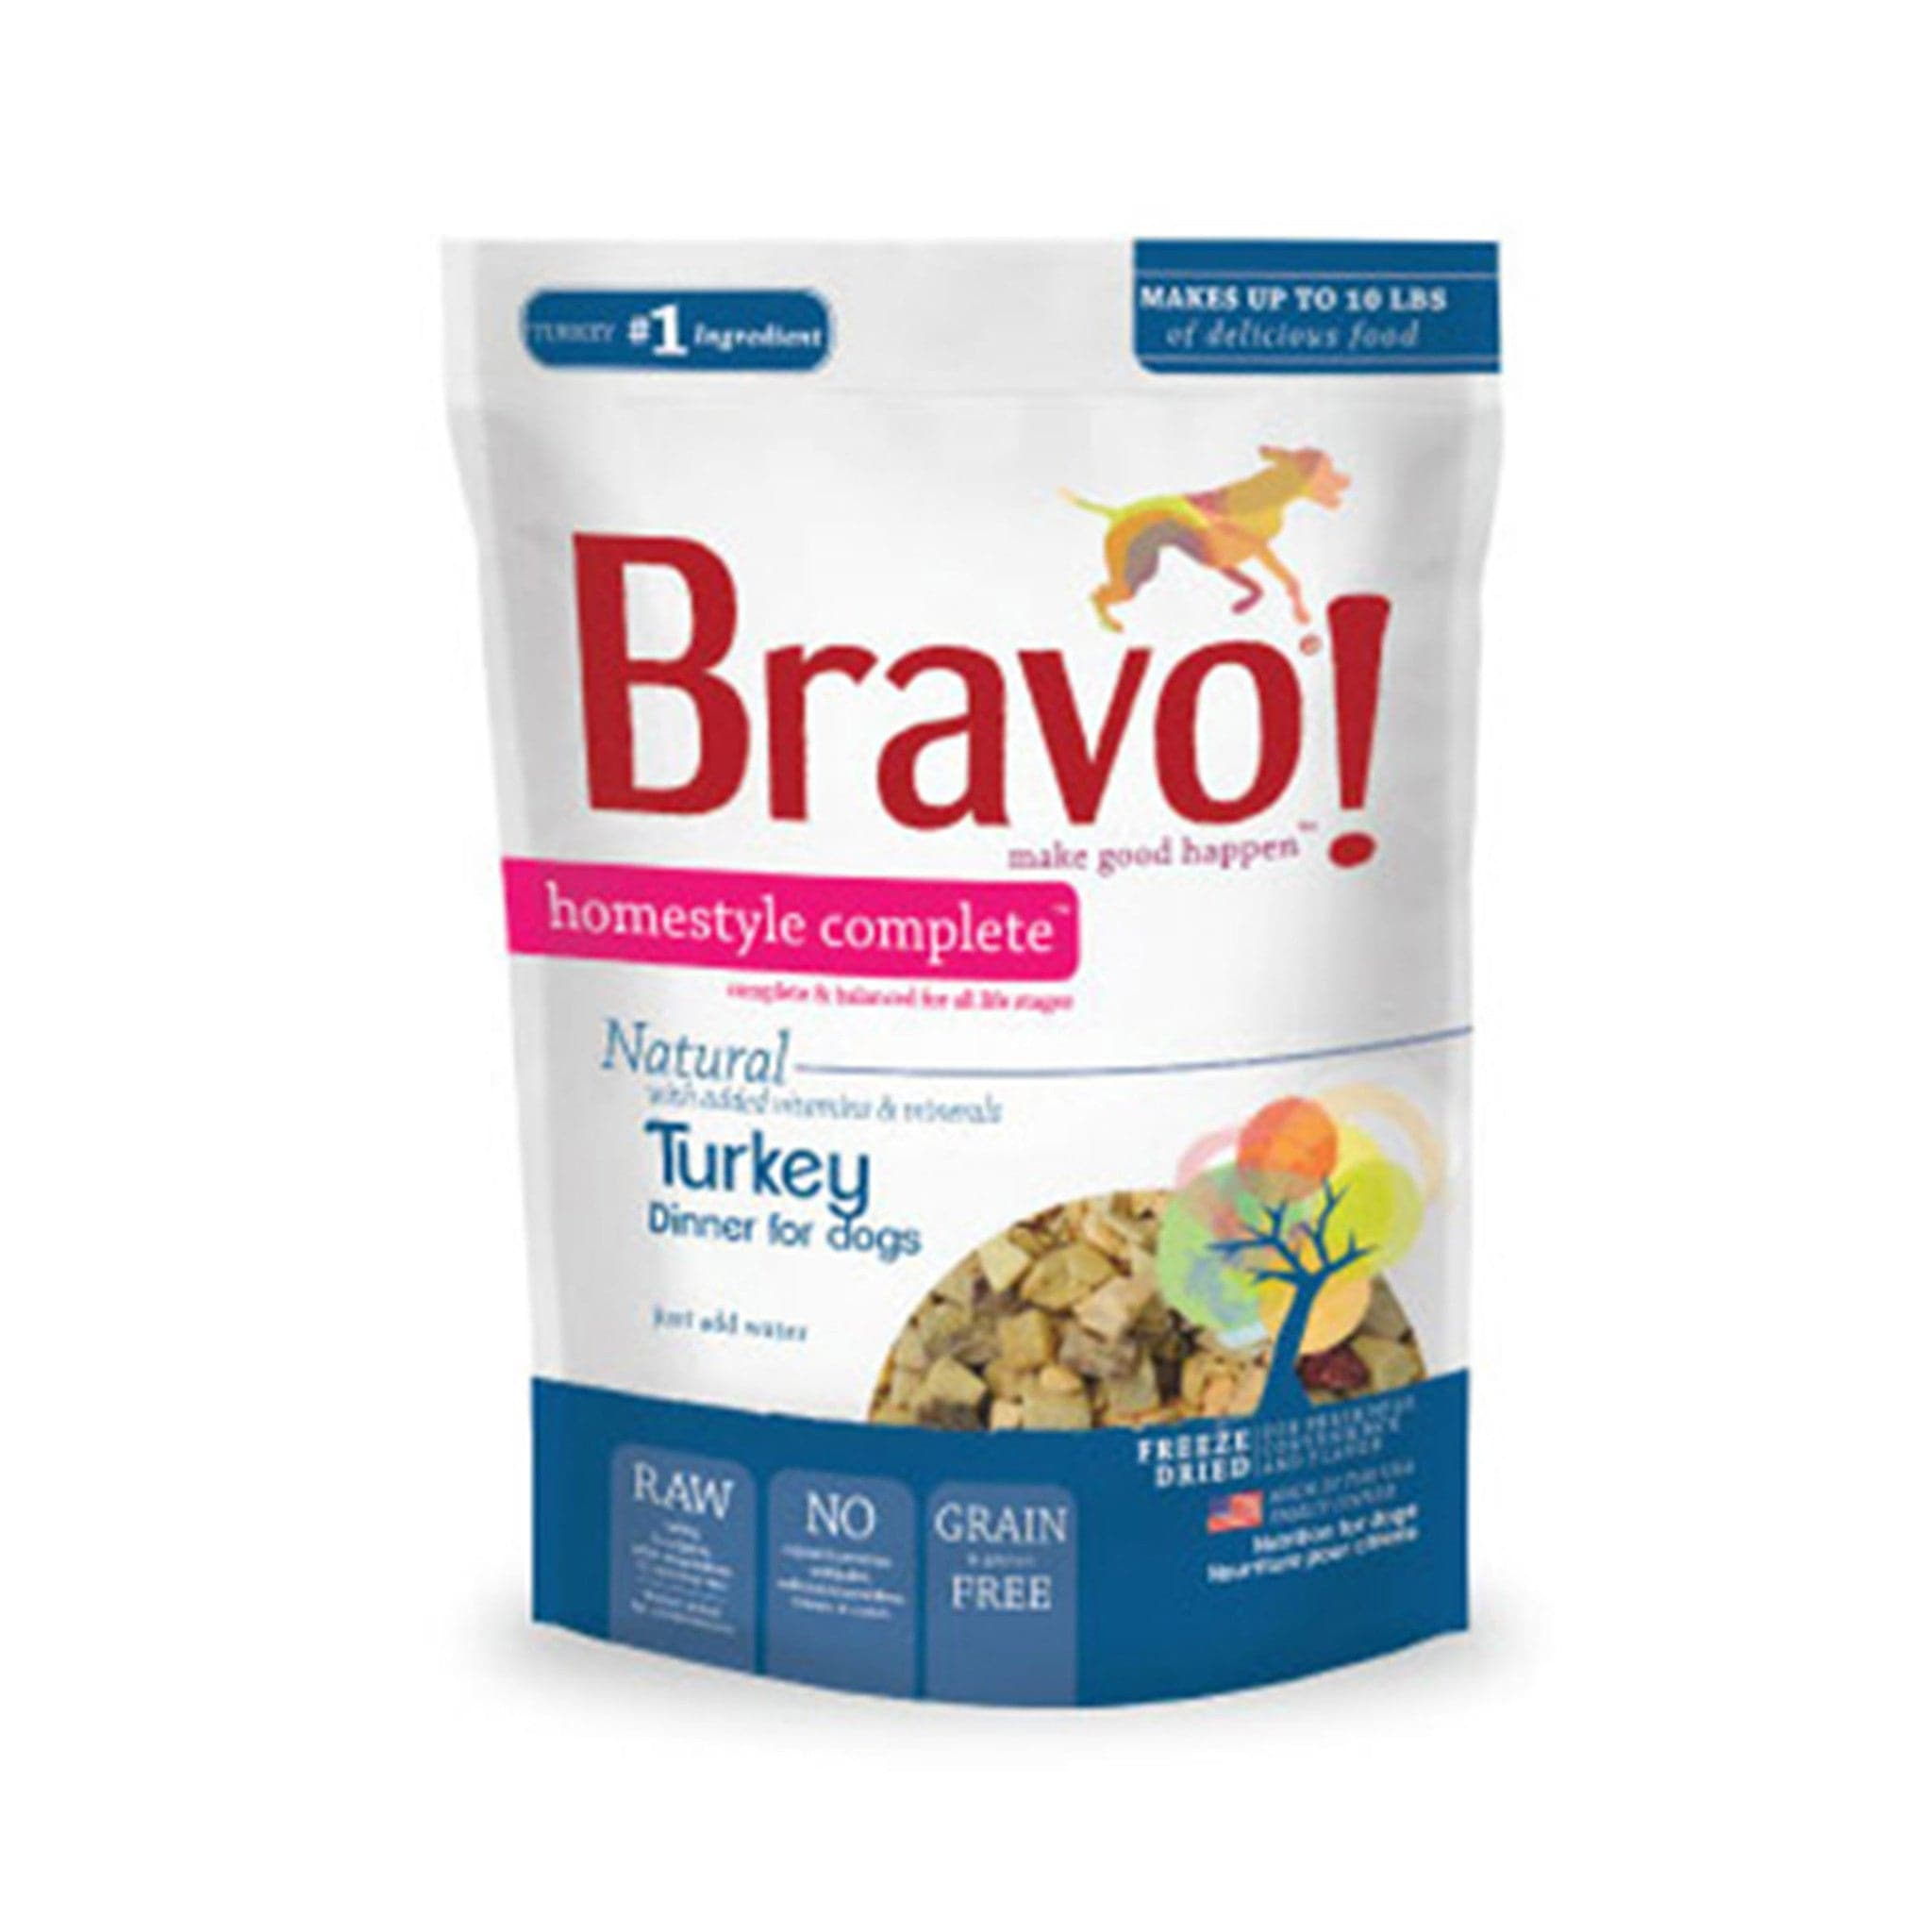 Bravo! Homestyle Complete Dinners for Dogs